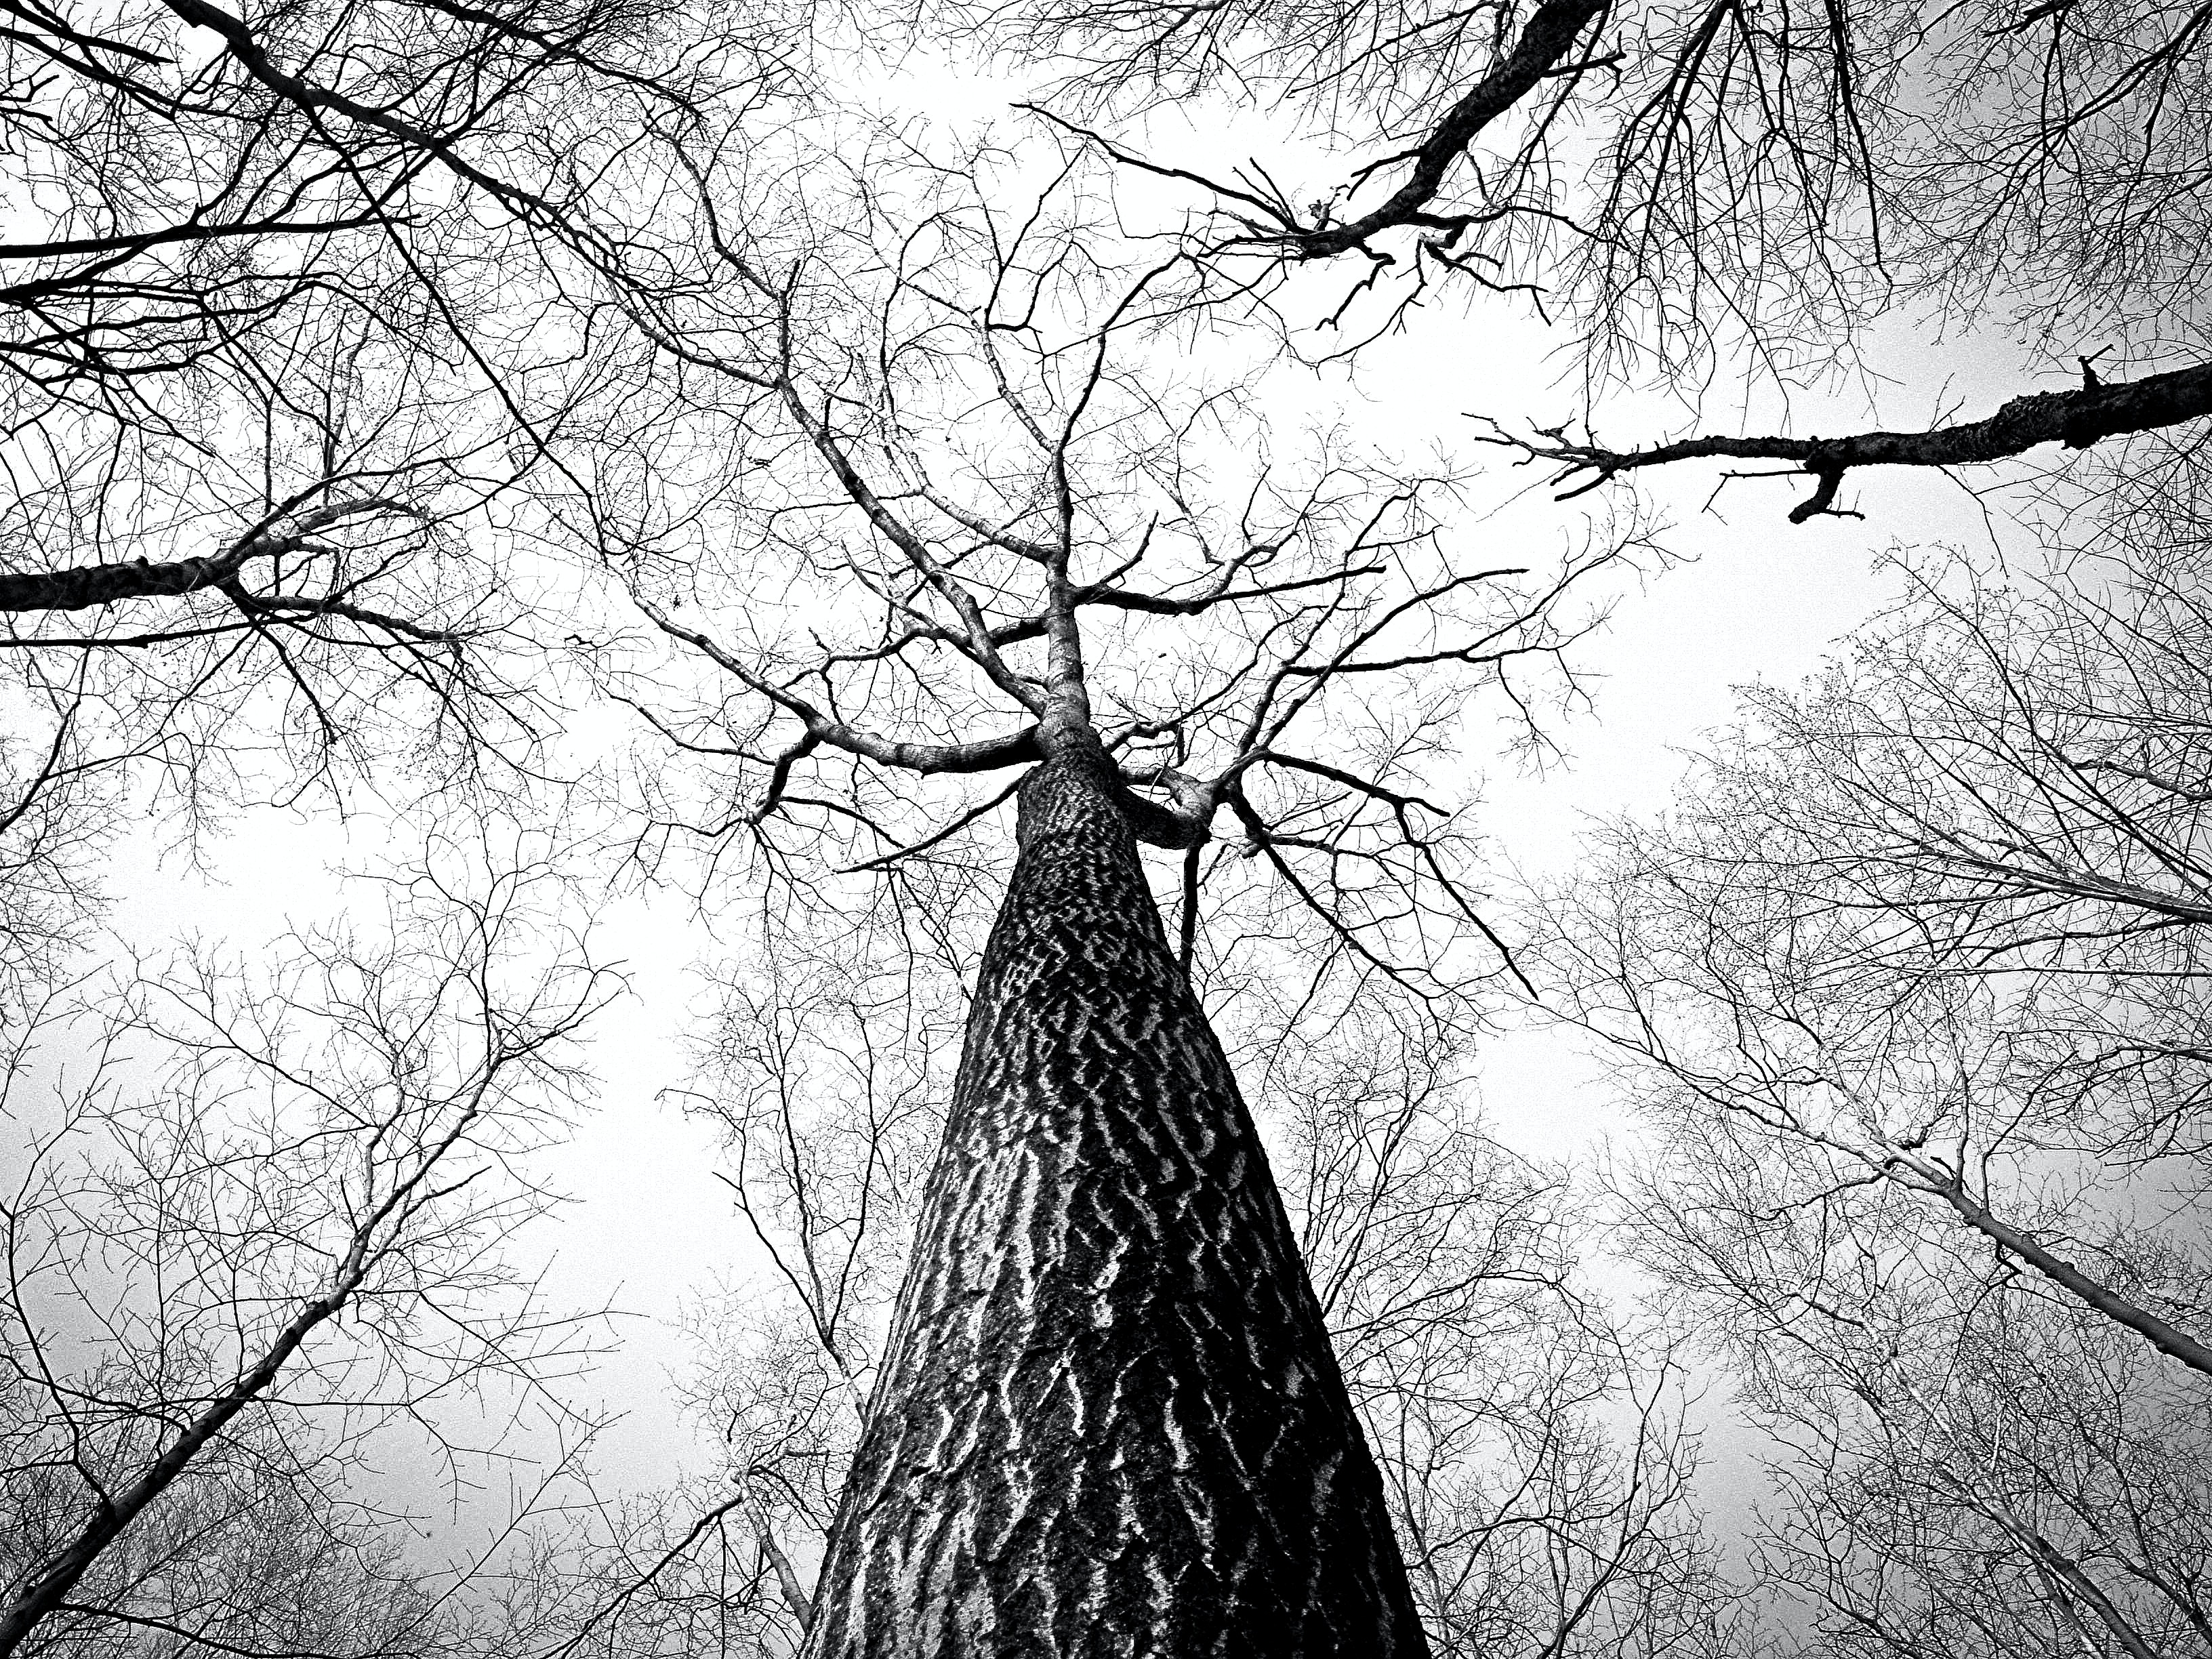 worm s eye view photography of naked tree free stock photo rh pexels com black and white 2 cheats black and white 2 windows 10 startet nicht